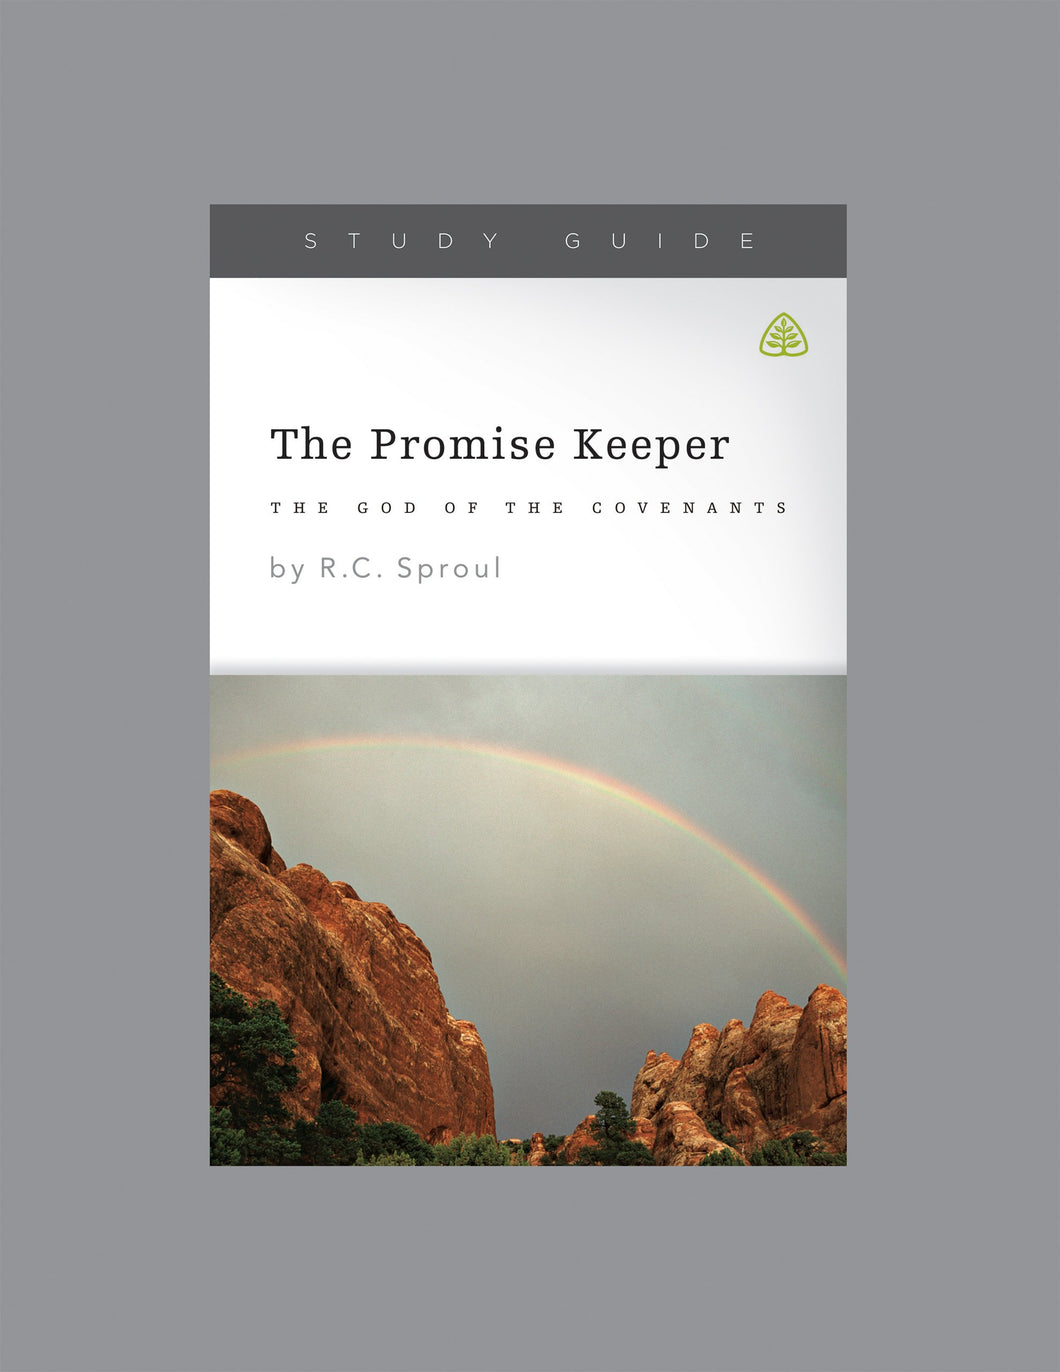 The Promise Keeper: God of the Covenants — Download Study Guide PDF (1 License)